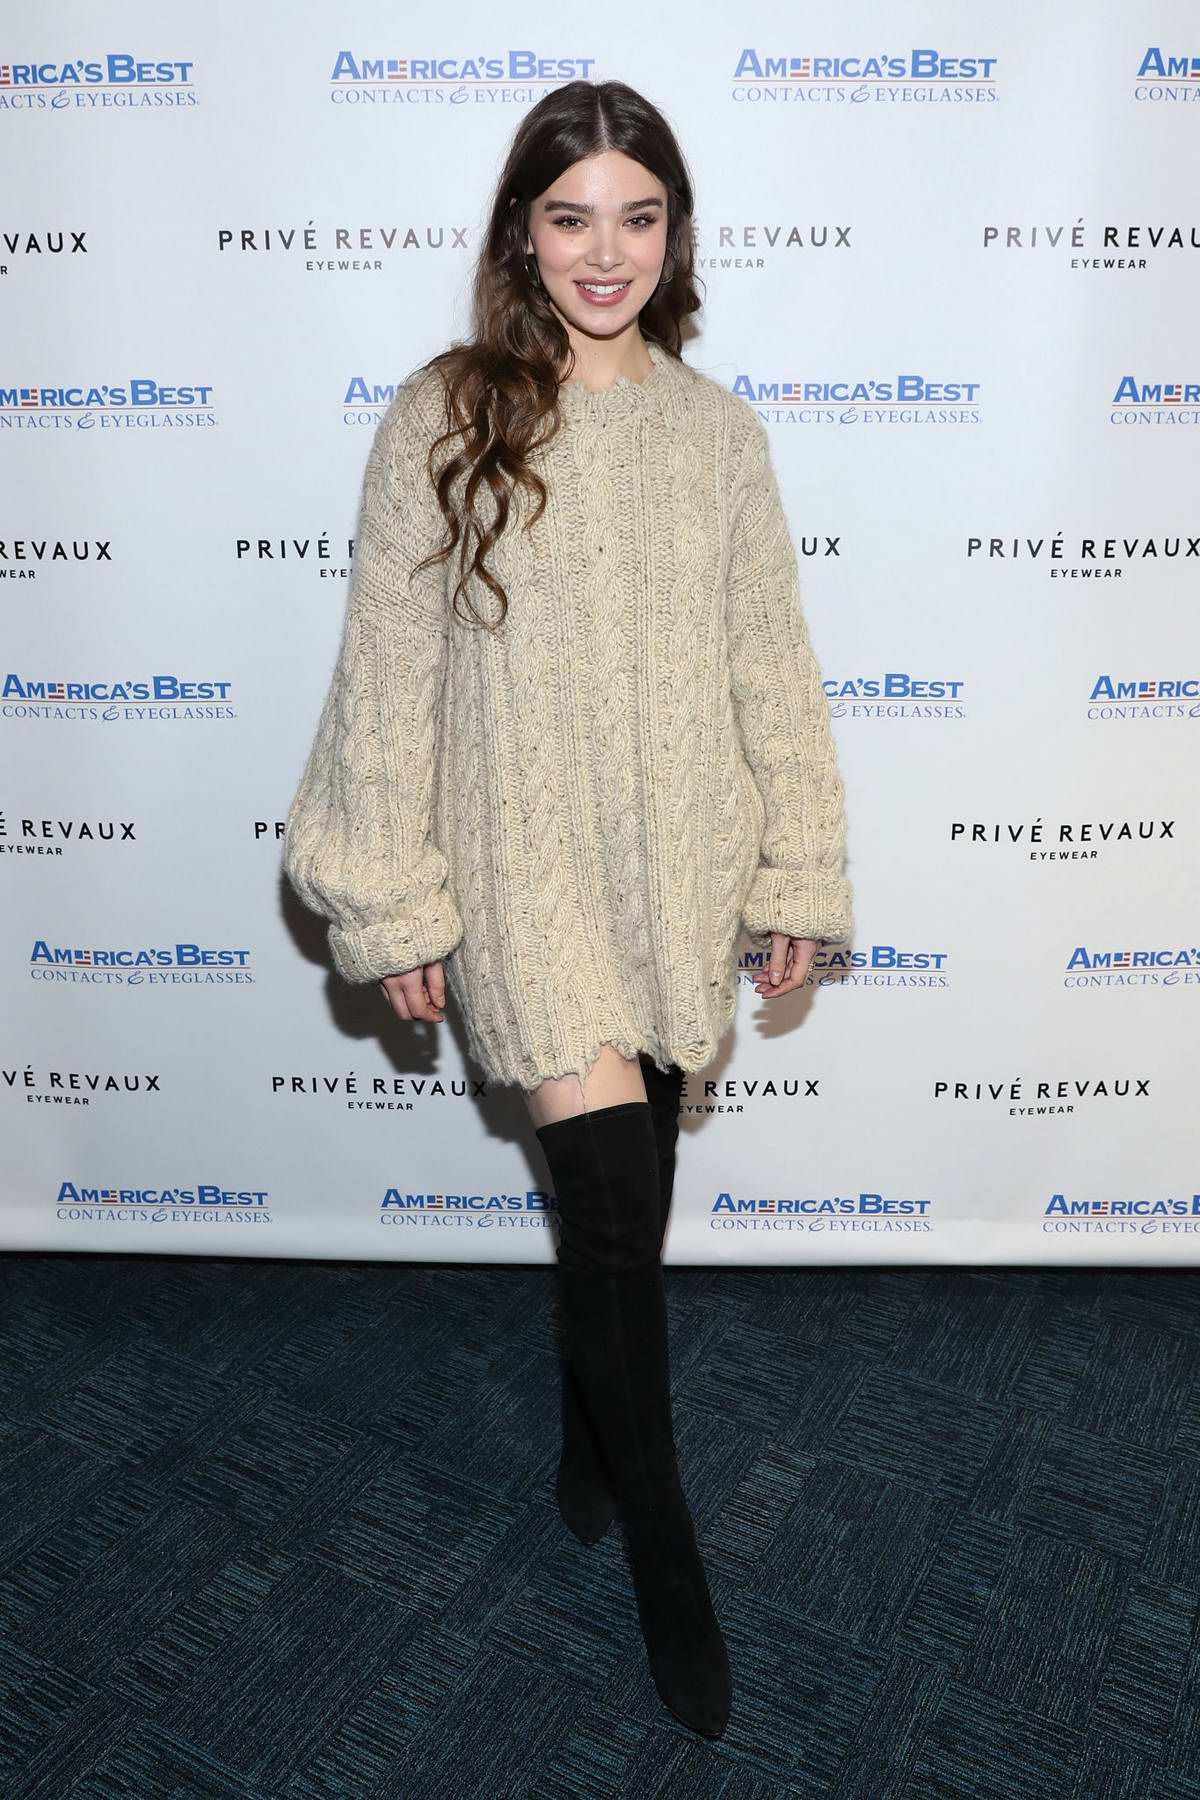 Hailee Steinfeld attends a Prive Revaux event in Glendale, New York